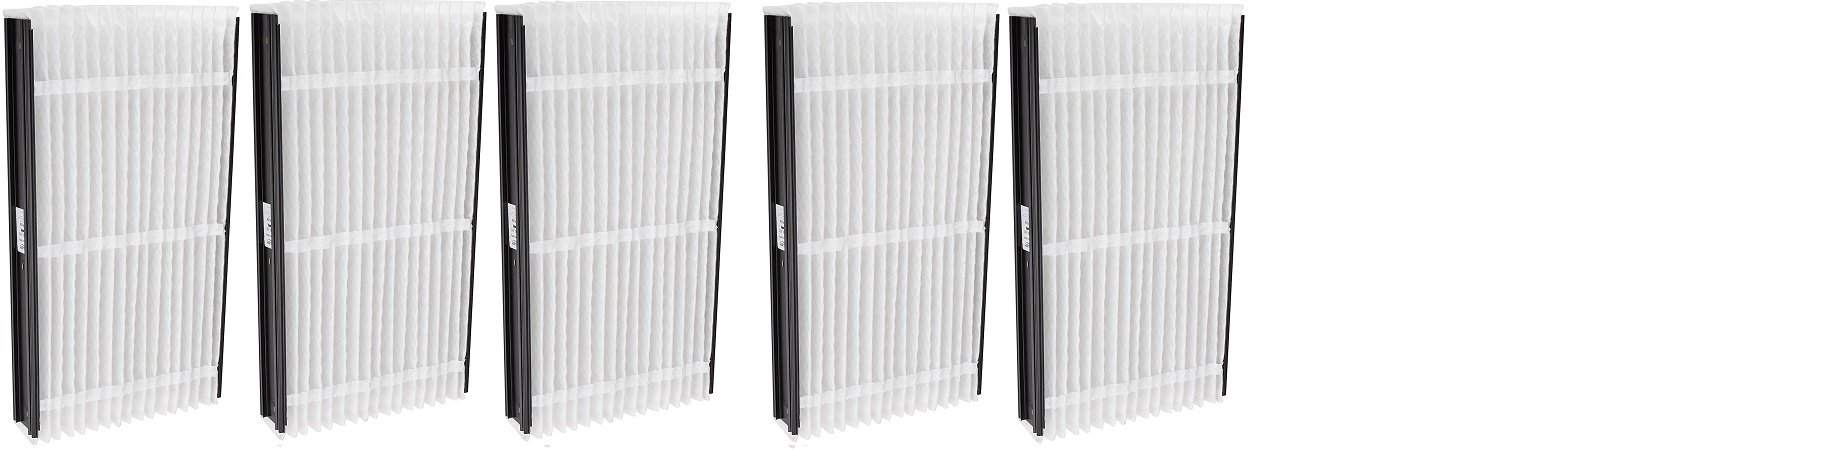 Aprilaire 413 Filter Single Pack for Air Purifier Models 1410, 1610, 2410, 3410, 4400, Space-Gard 2400 (5 PACK)